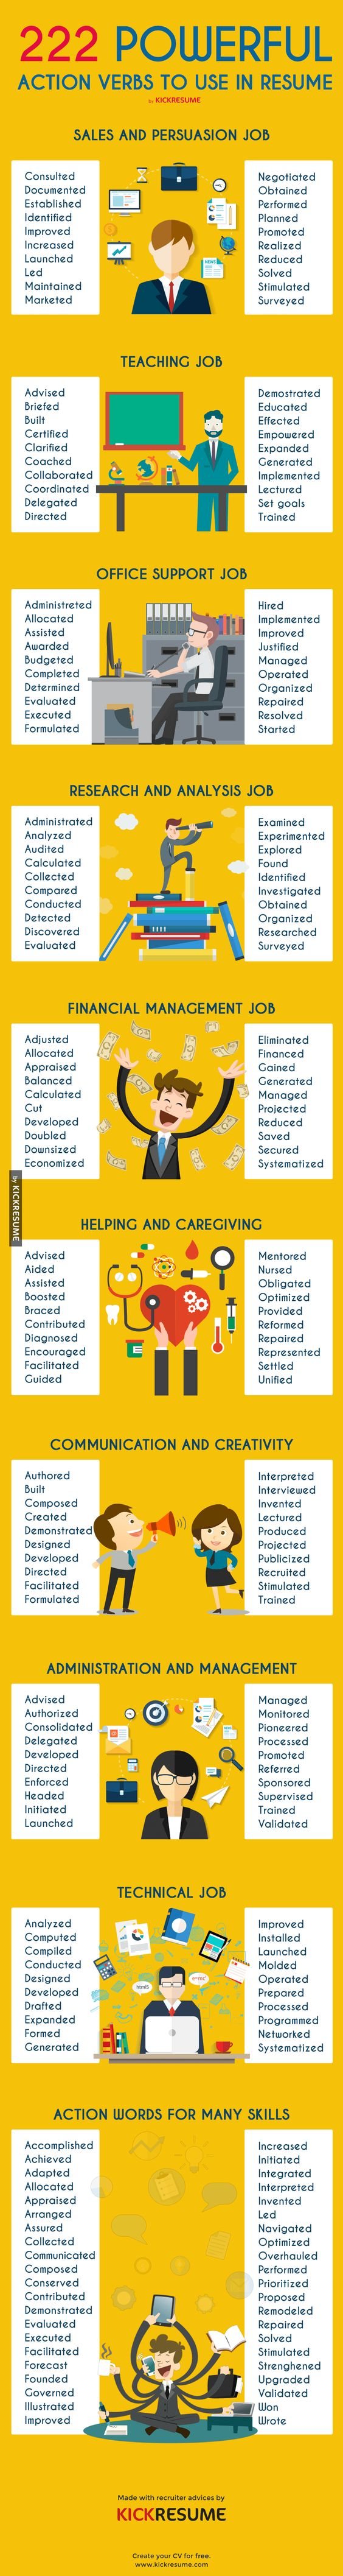 good action verbs for resumes - Akba.greenw.co